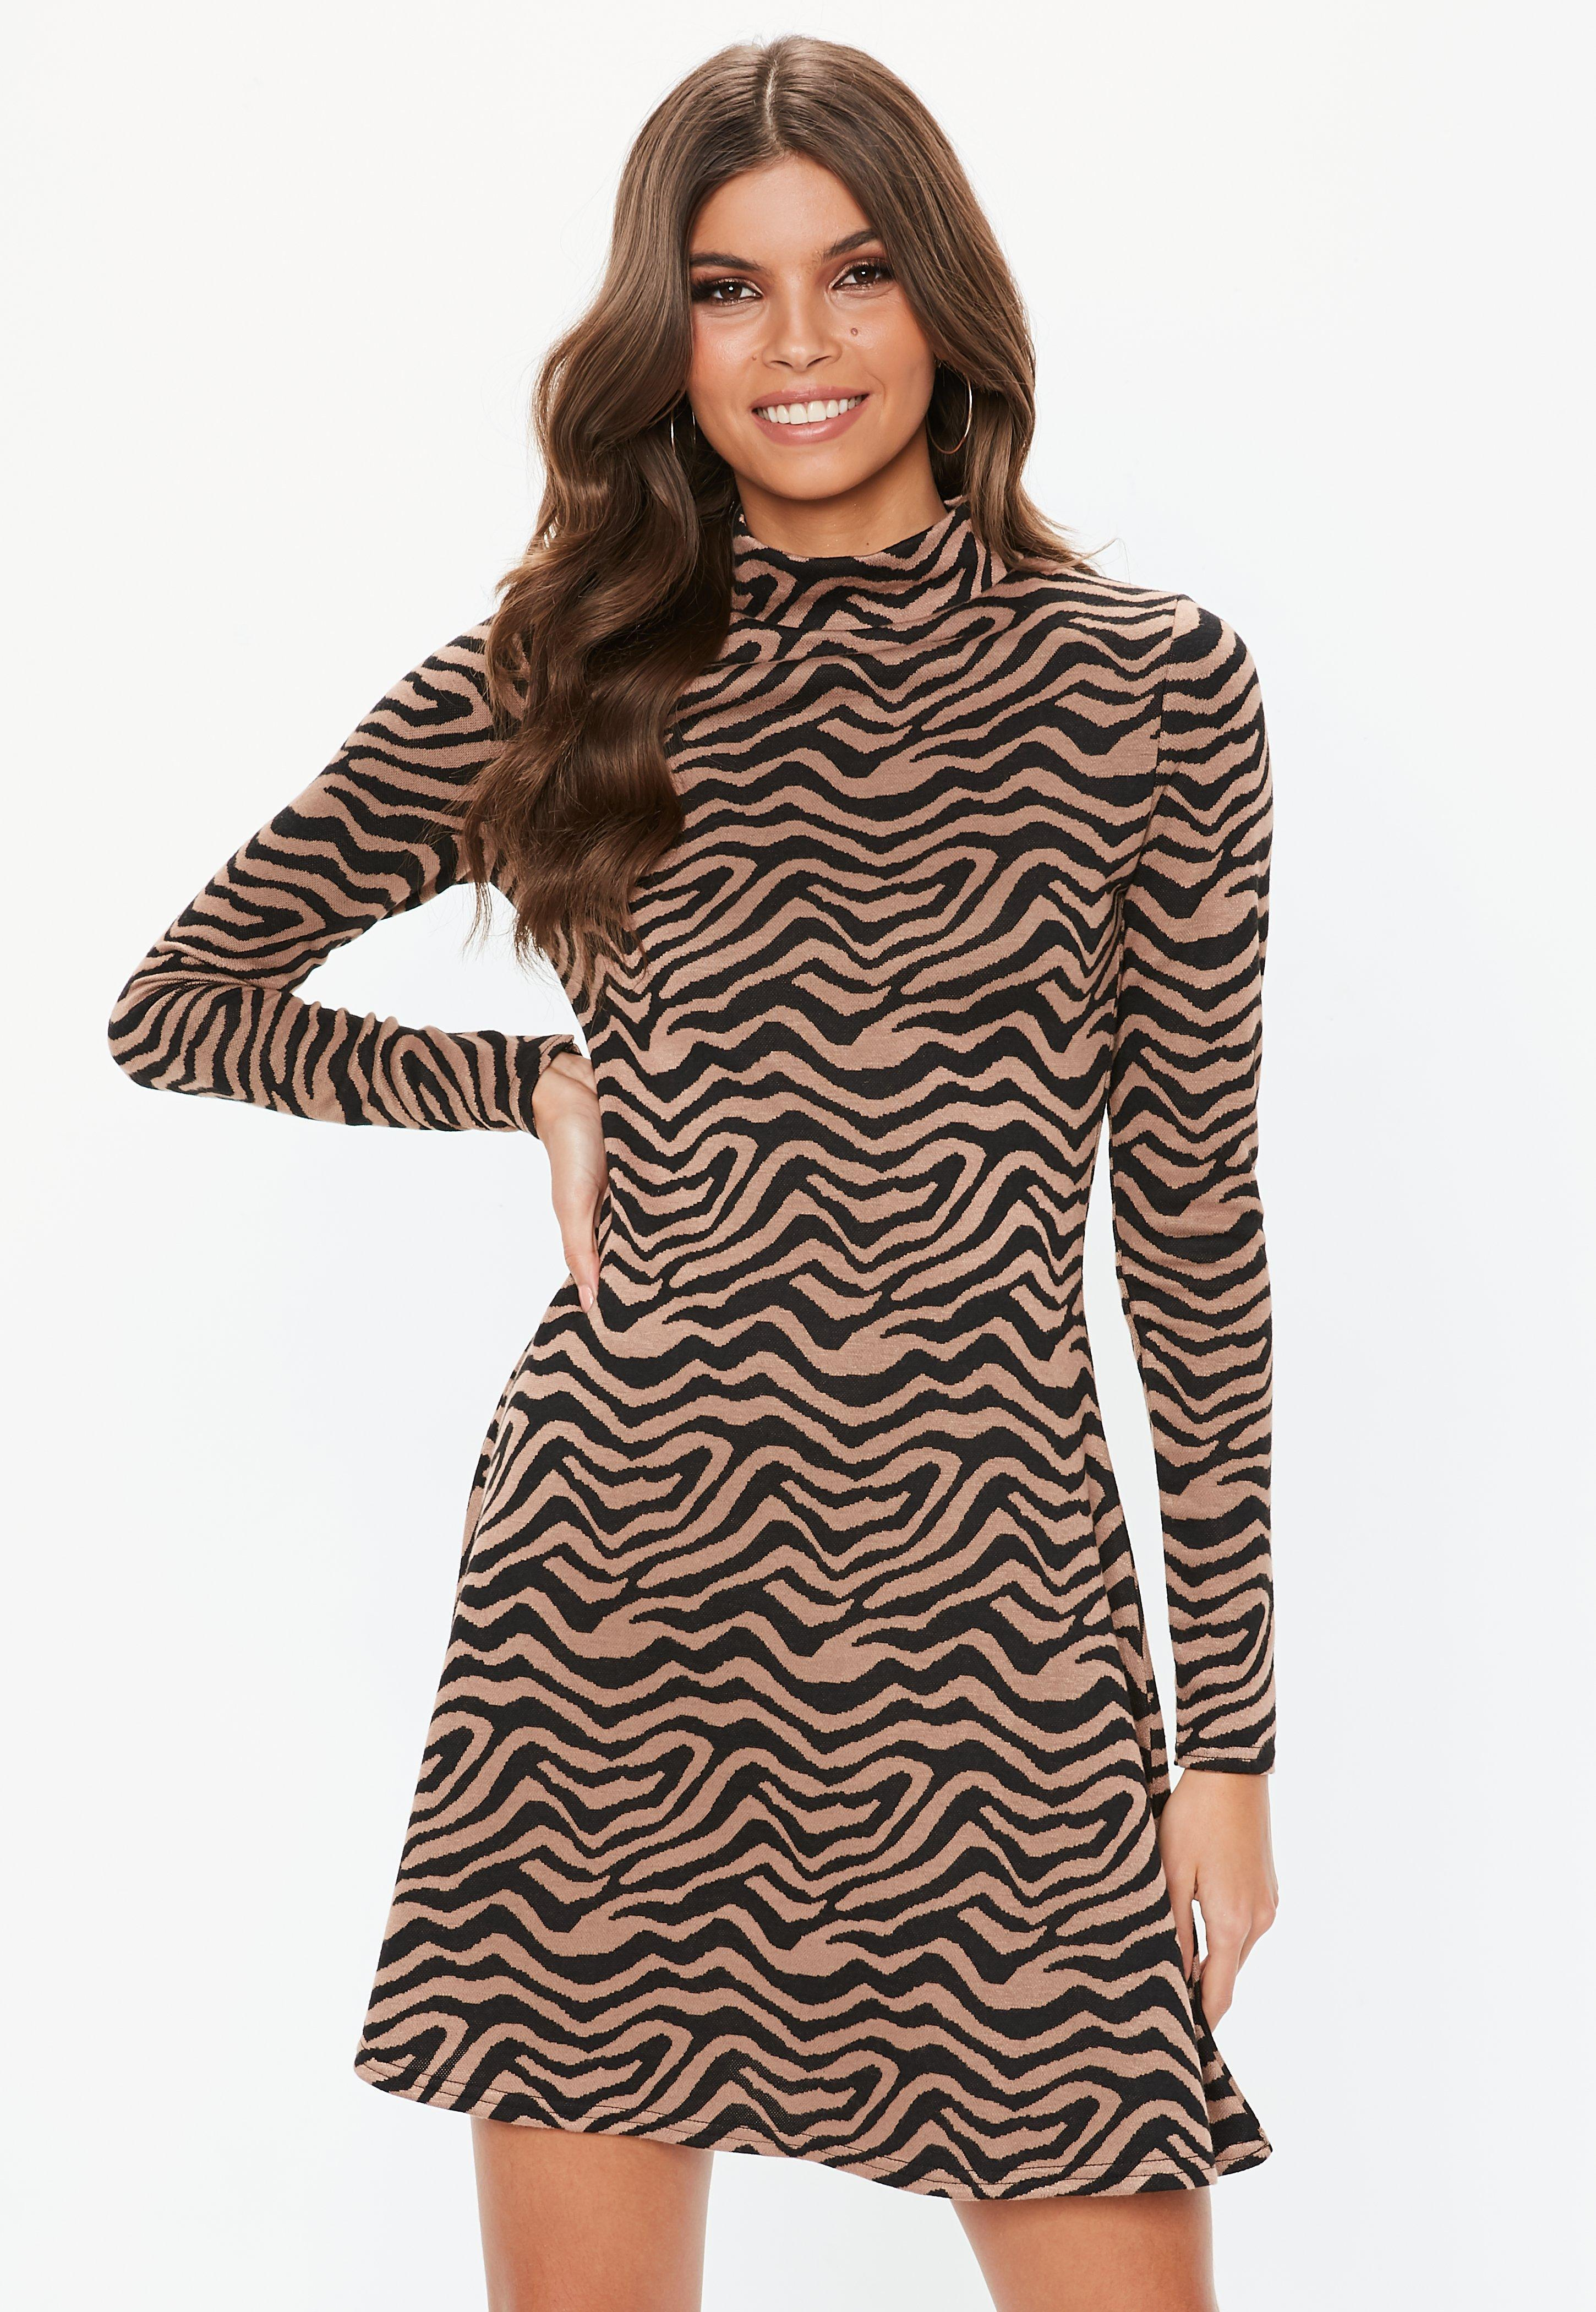 6c0149a9070 Lyst - Missguided Brown Animal Print Sweater Dress in Brown